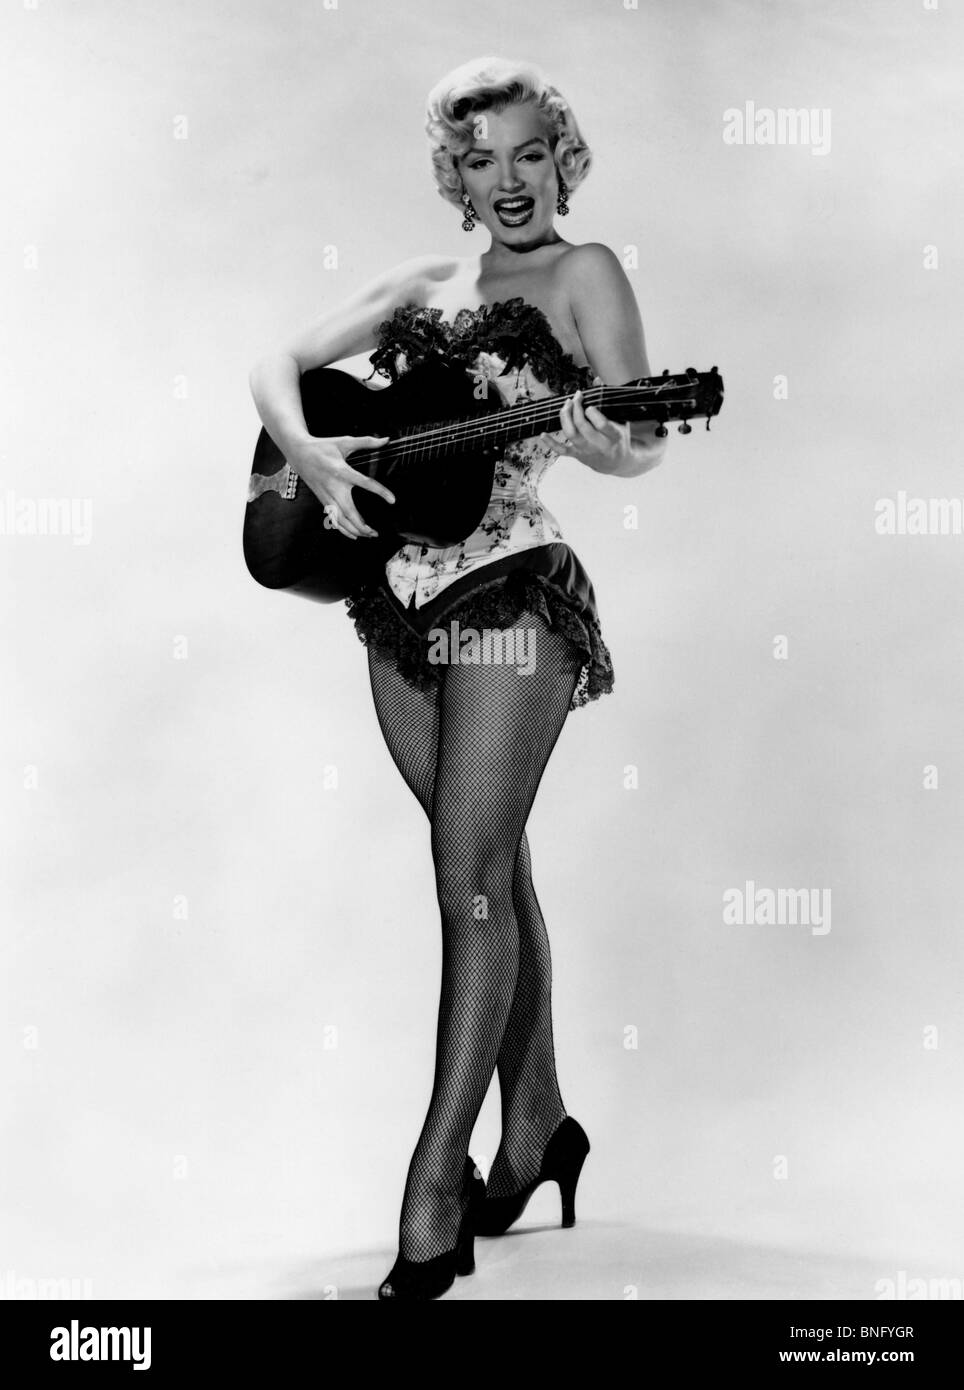 Marilyn Monroe playing guitar - Stock Image